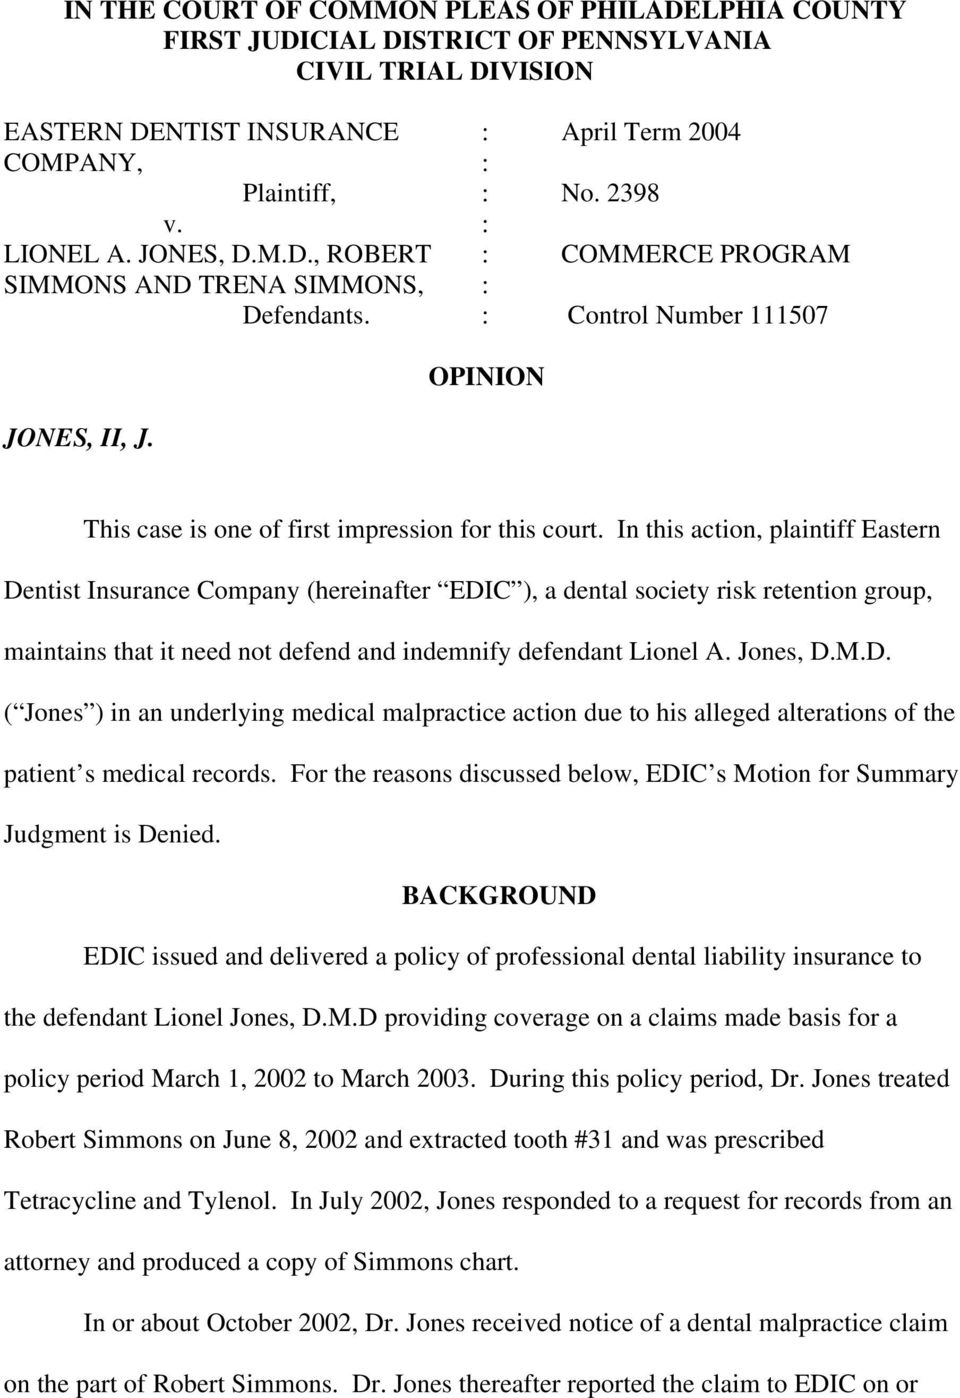 In this action, plaintiff Eastern Dentist Insurance Company (hereinafter EDIC ), a dental society risk retention group, maintains that it need not defend and indemnify defendant Lionel A. Jones, D.M.